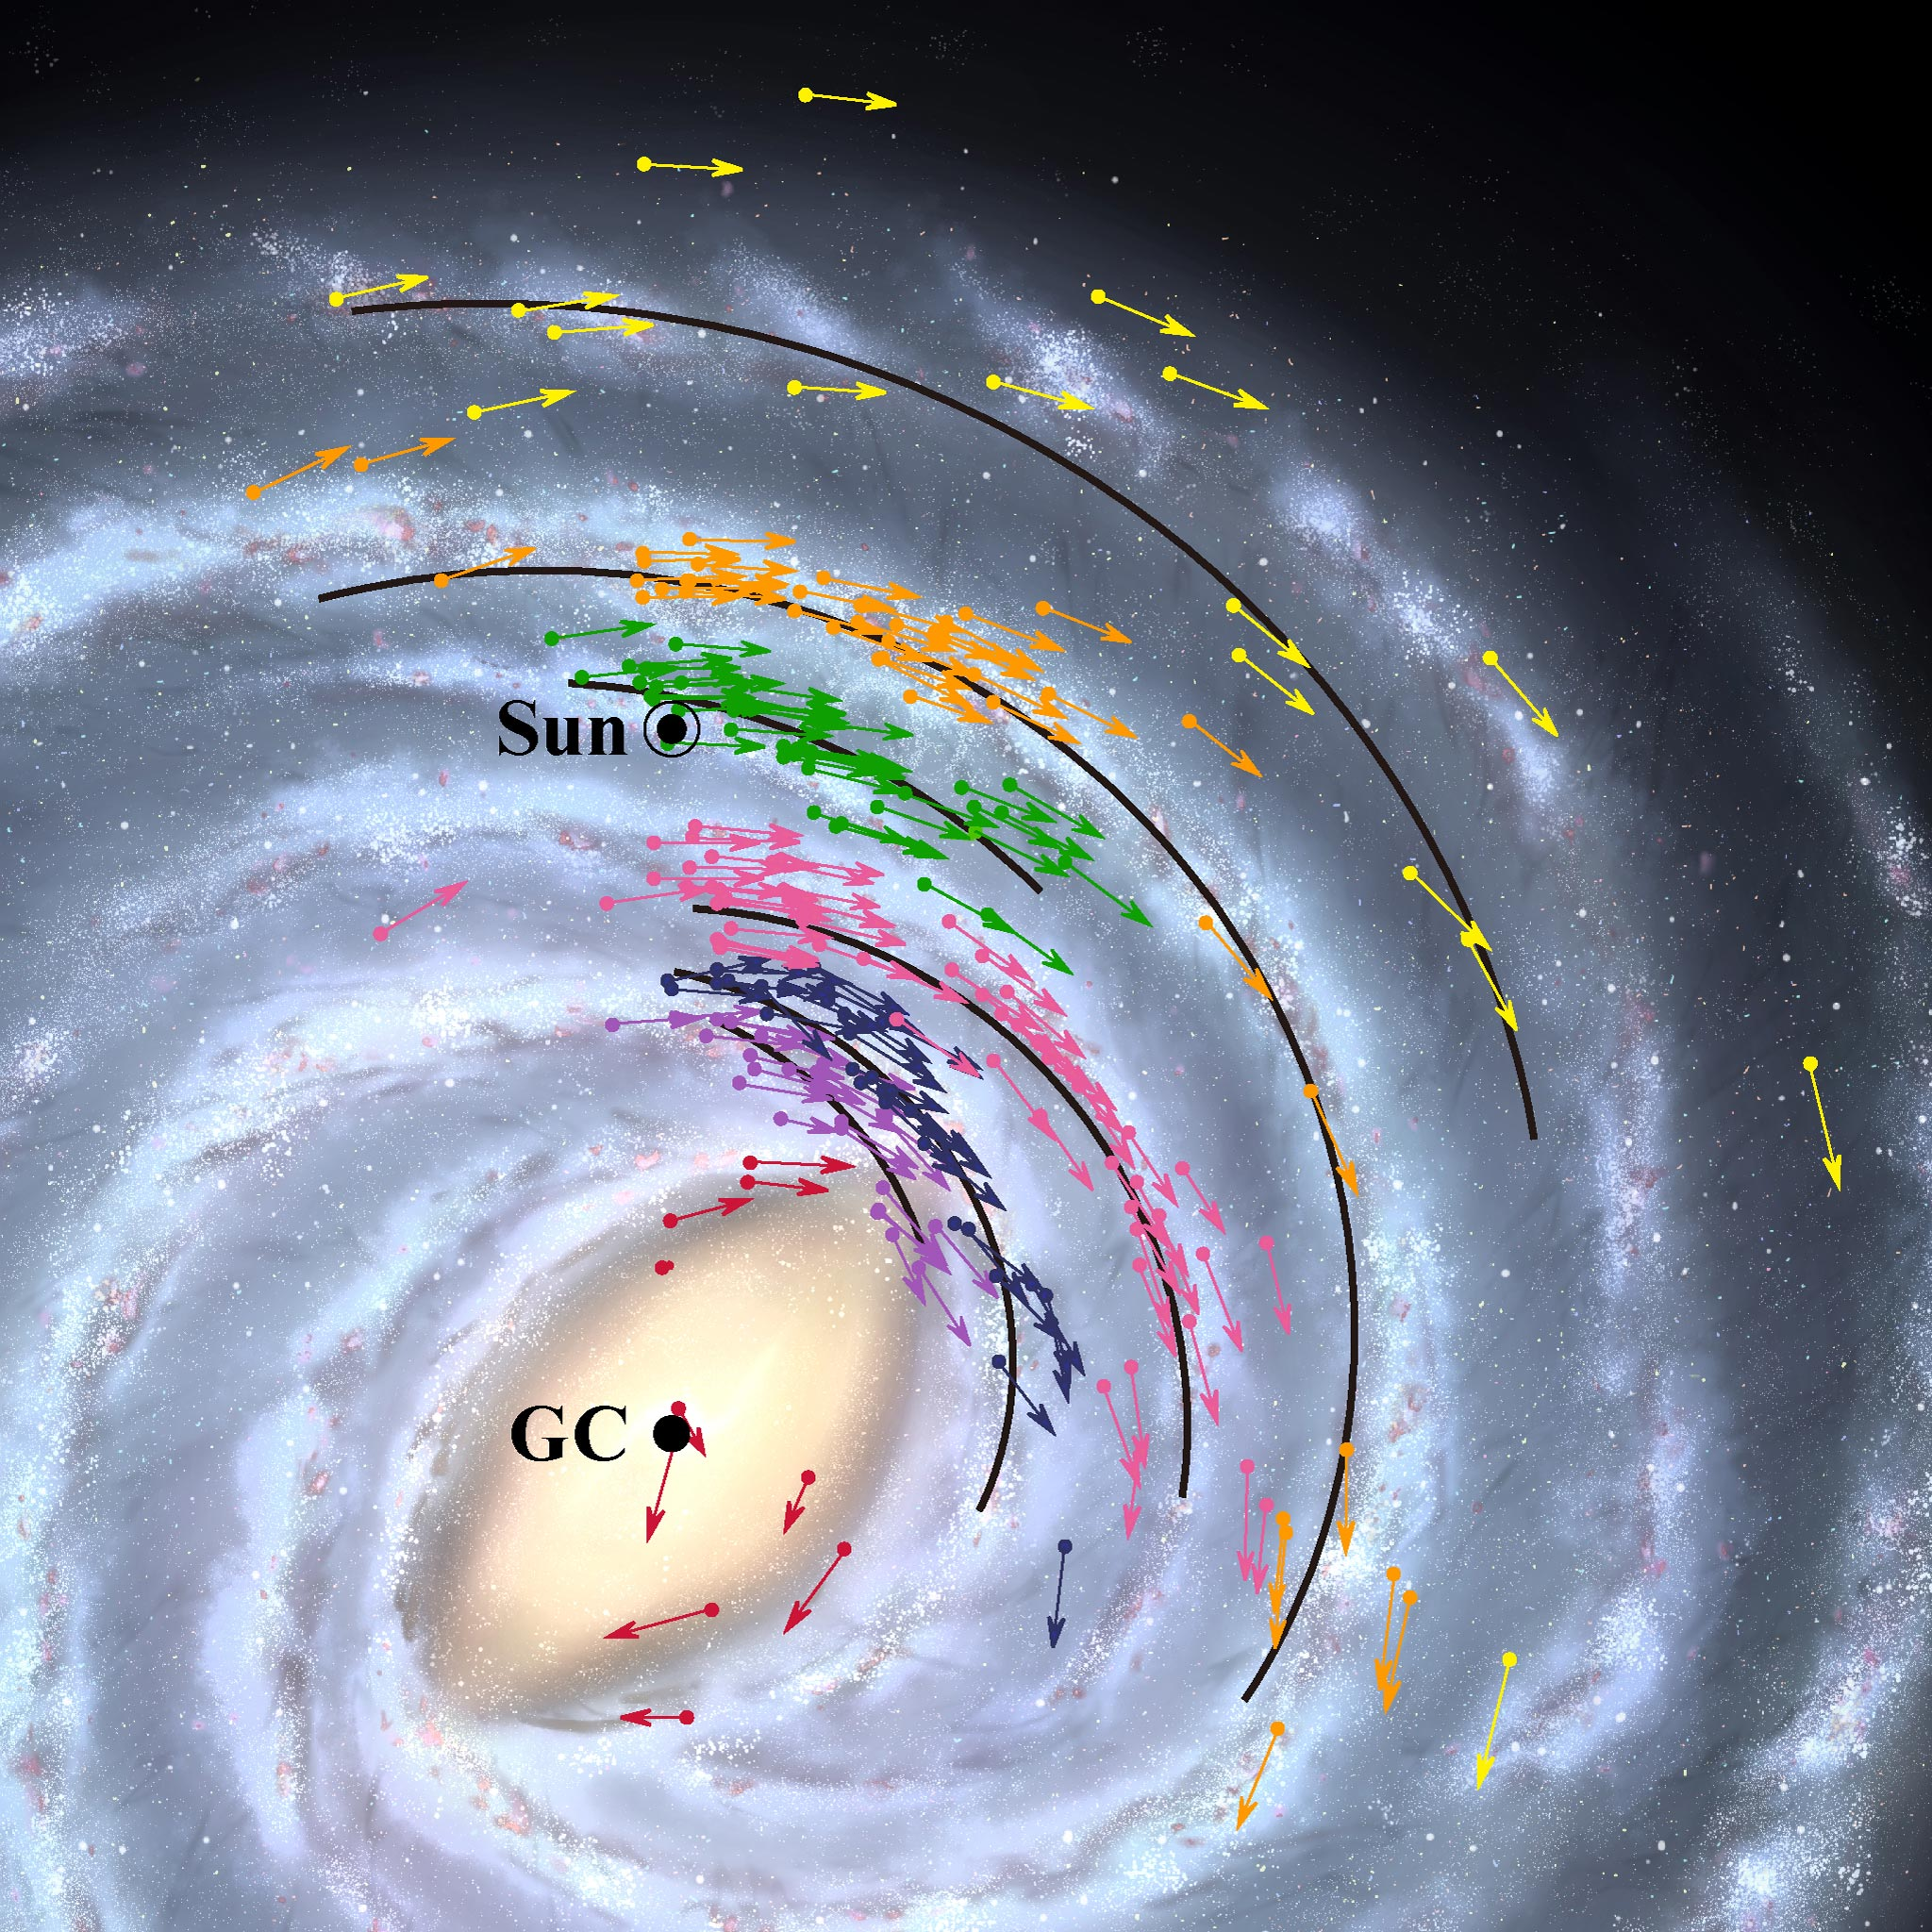 Earth is 16,000 miles per hour faster, 2,000 light years closer to the supermassive black hole at the center of the Milky Way